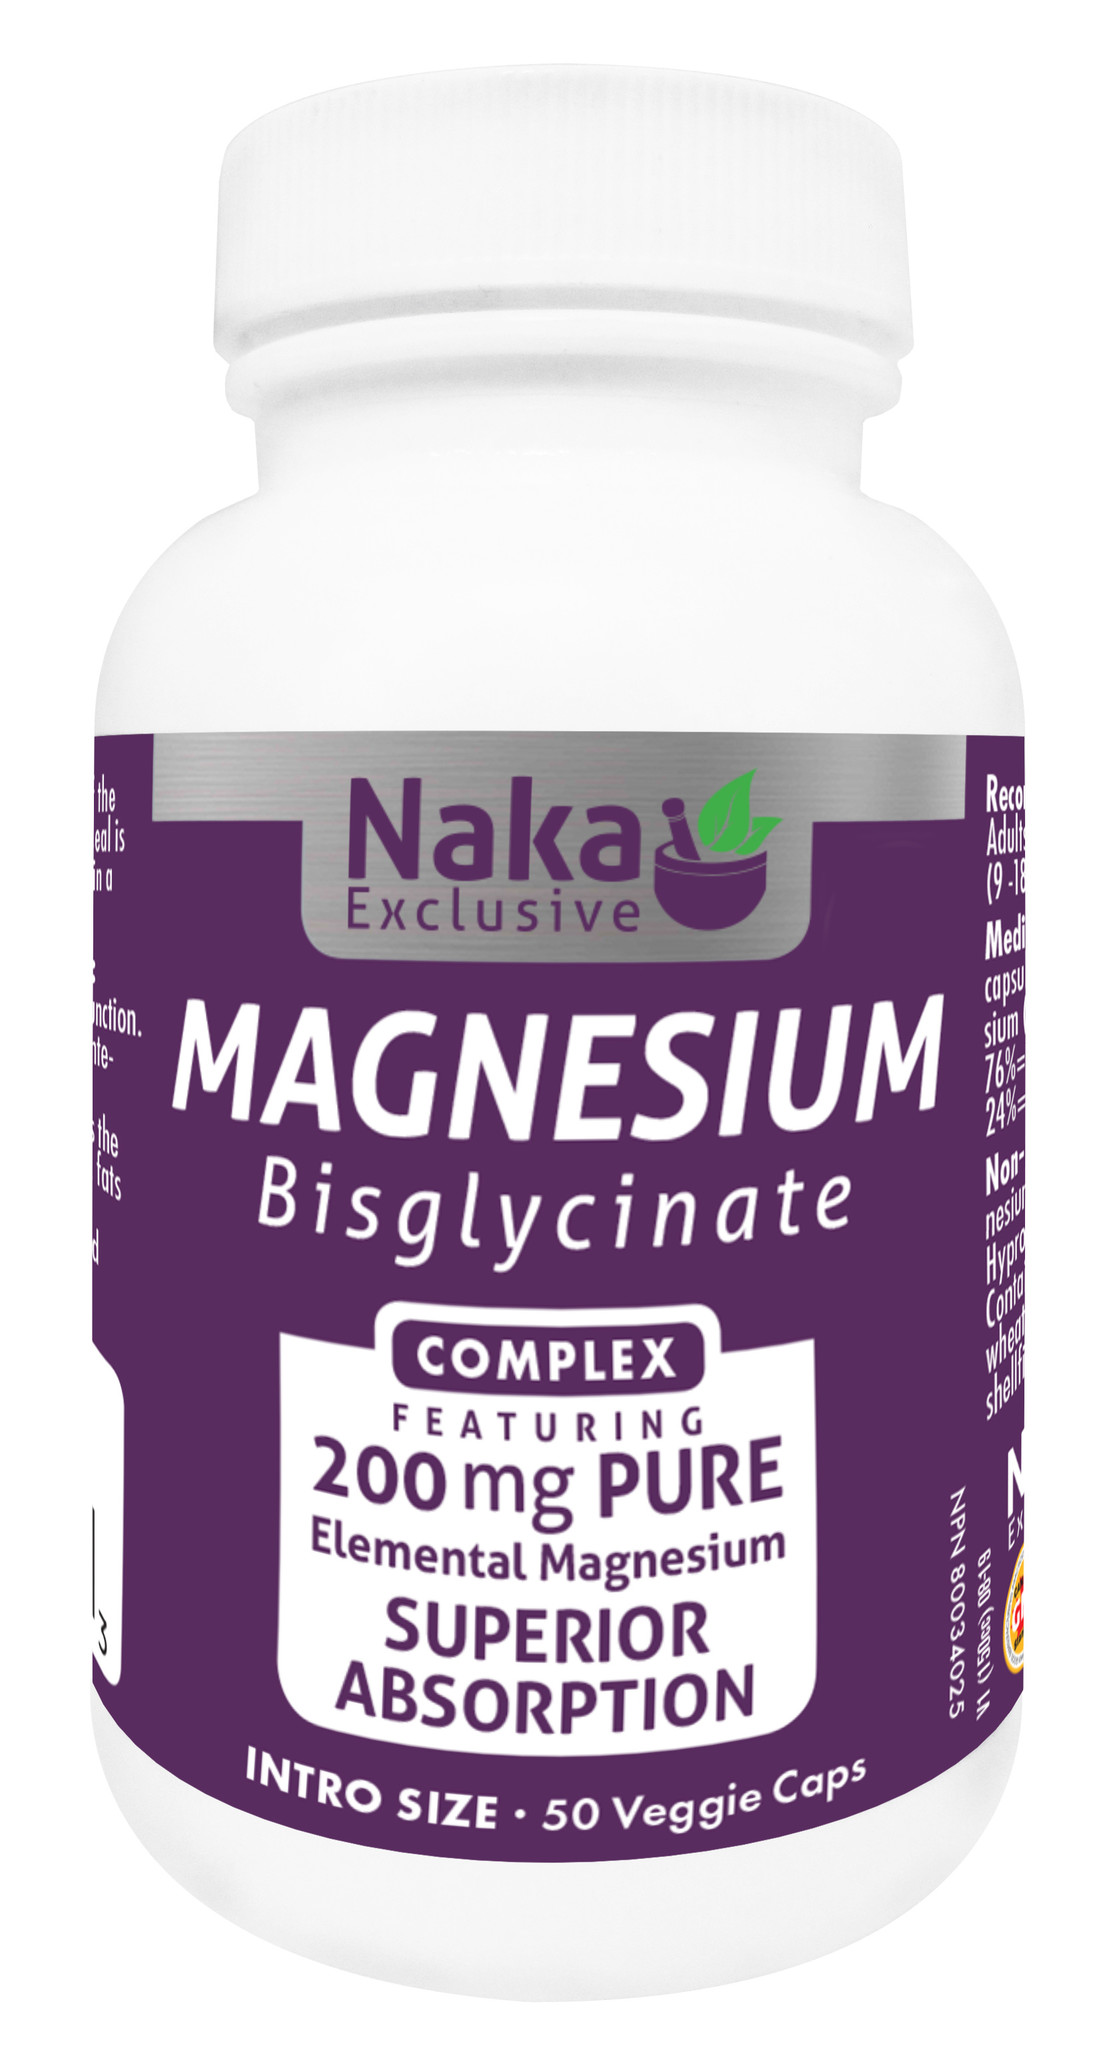 Naka Magnesium Bisglycinate complex 200mg - 50vcaps